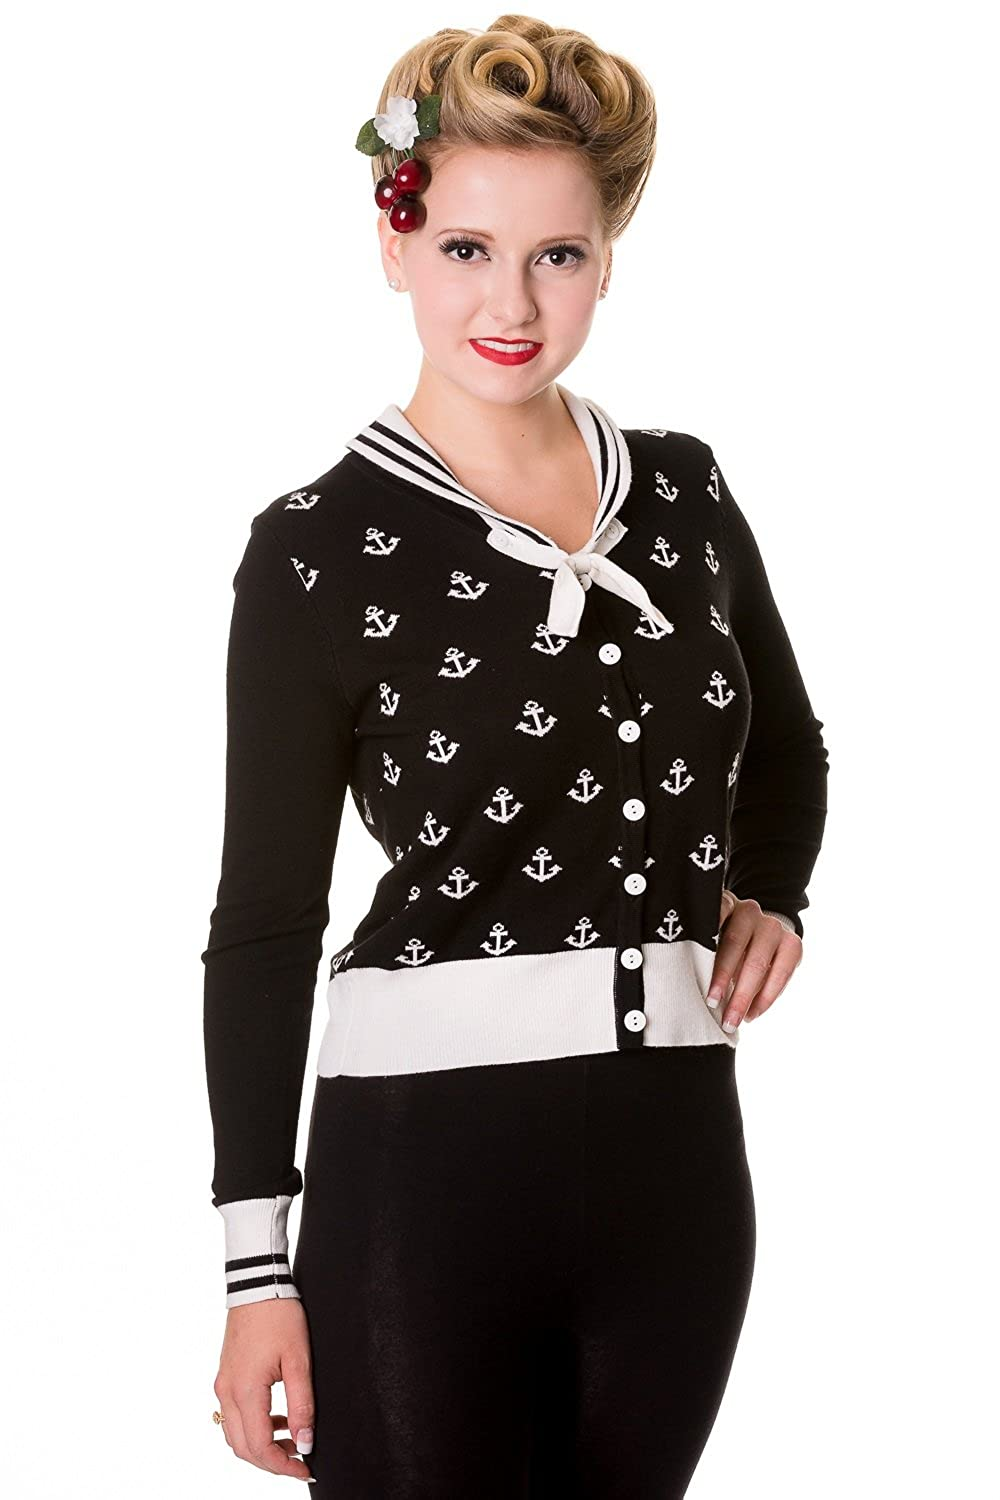 Vintage Sweaters: Cable Knit, Fair Isle Cardigans & Sweaters Banned Pinup Sailor Sail Away Mini Anchor with Bow Cardigan $55.00 AT vintagedancer.com